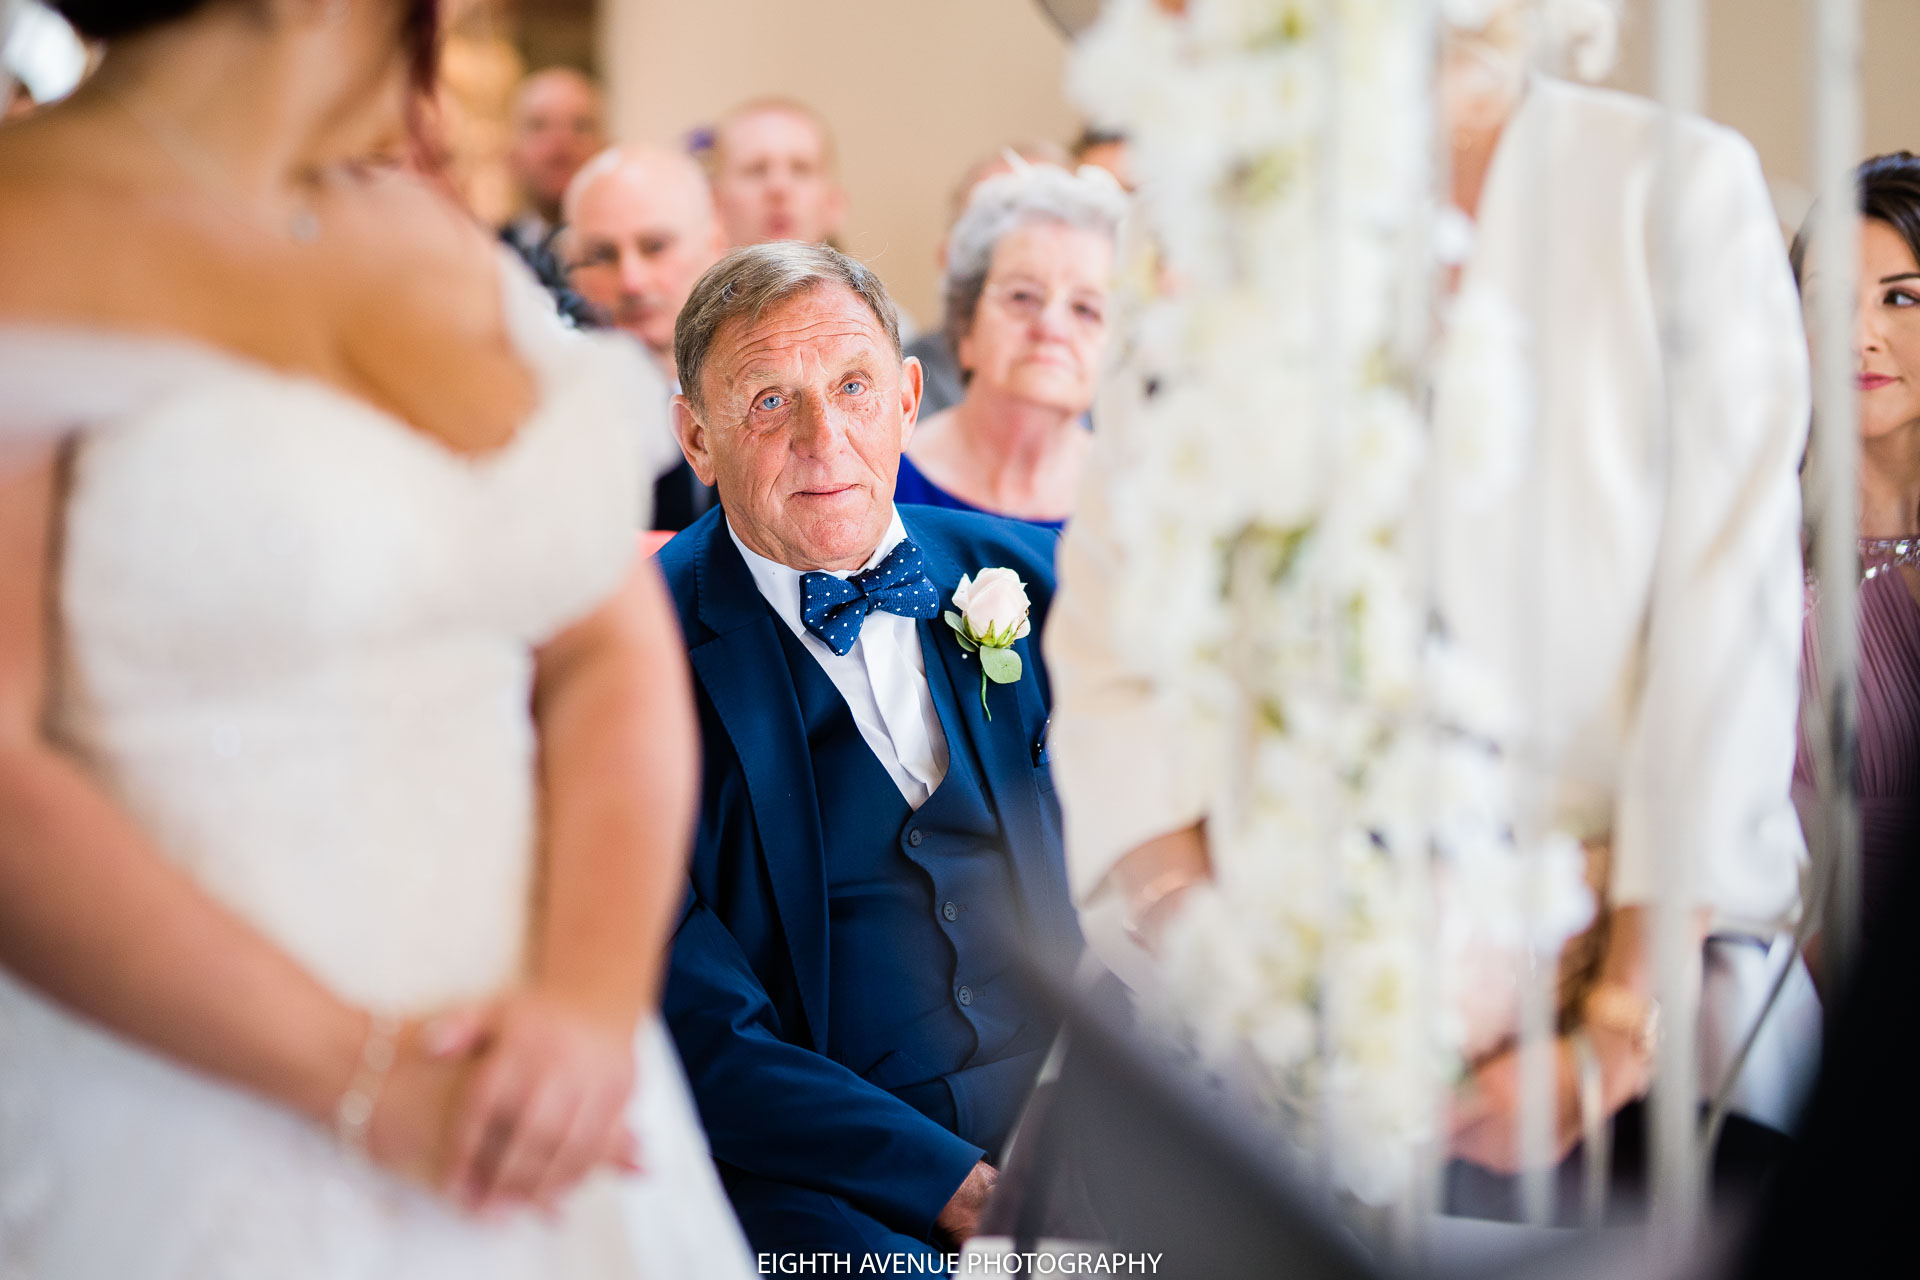 Father of the bride watching the wedding